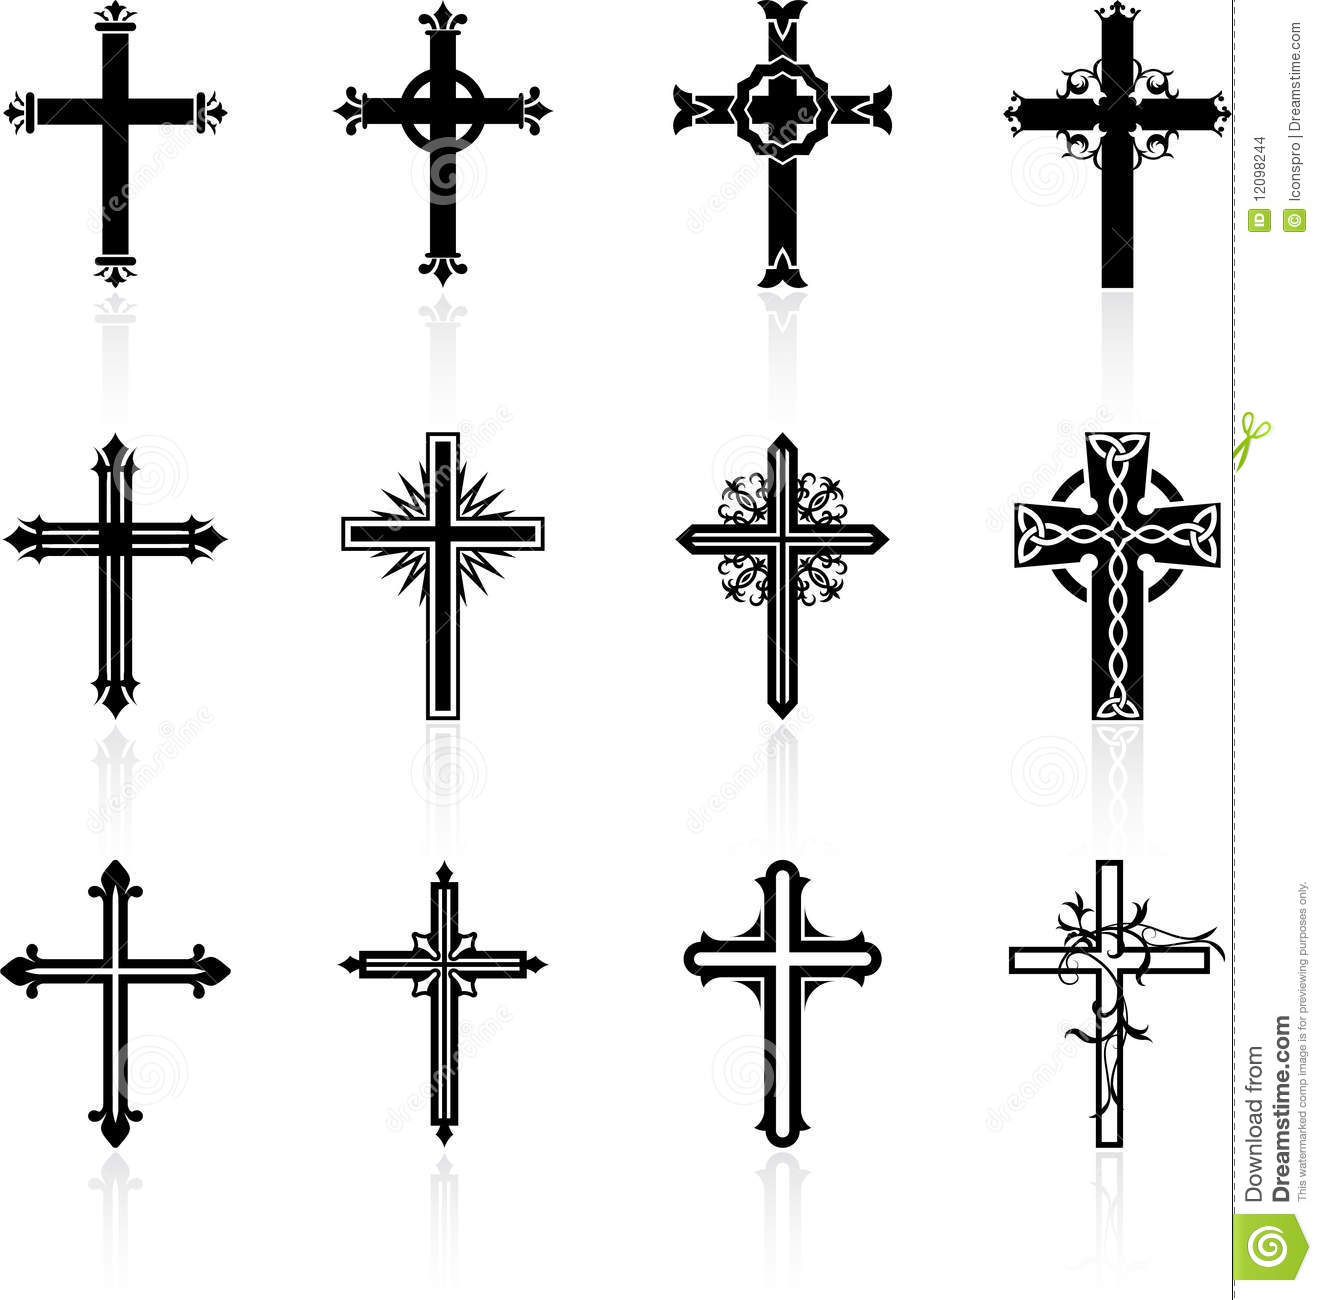 Religious Cross Design Collection Stock Images - Image: 12098244